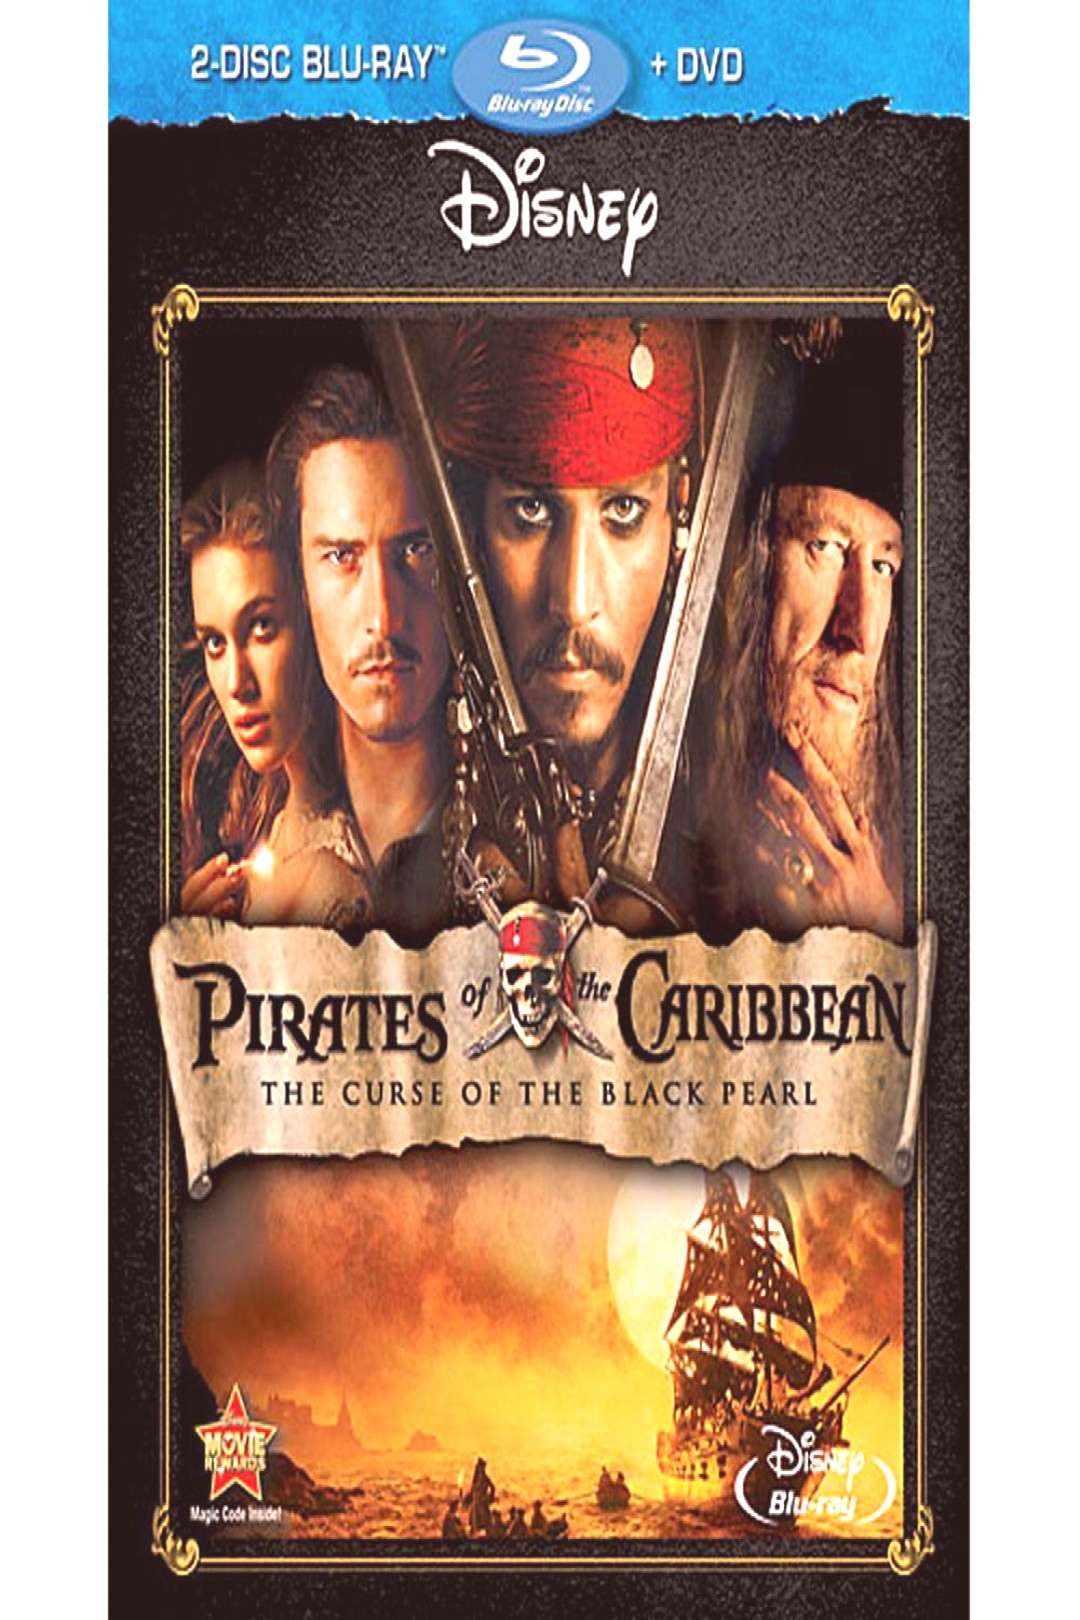 Pirates of the Caribbean The Curse of the Black Pearl - 2-Disc Combo Pack shopDisney